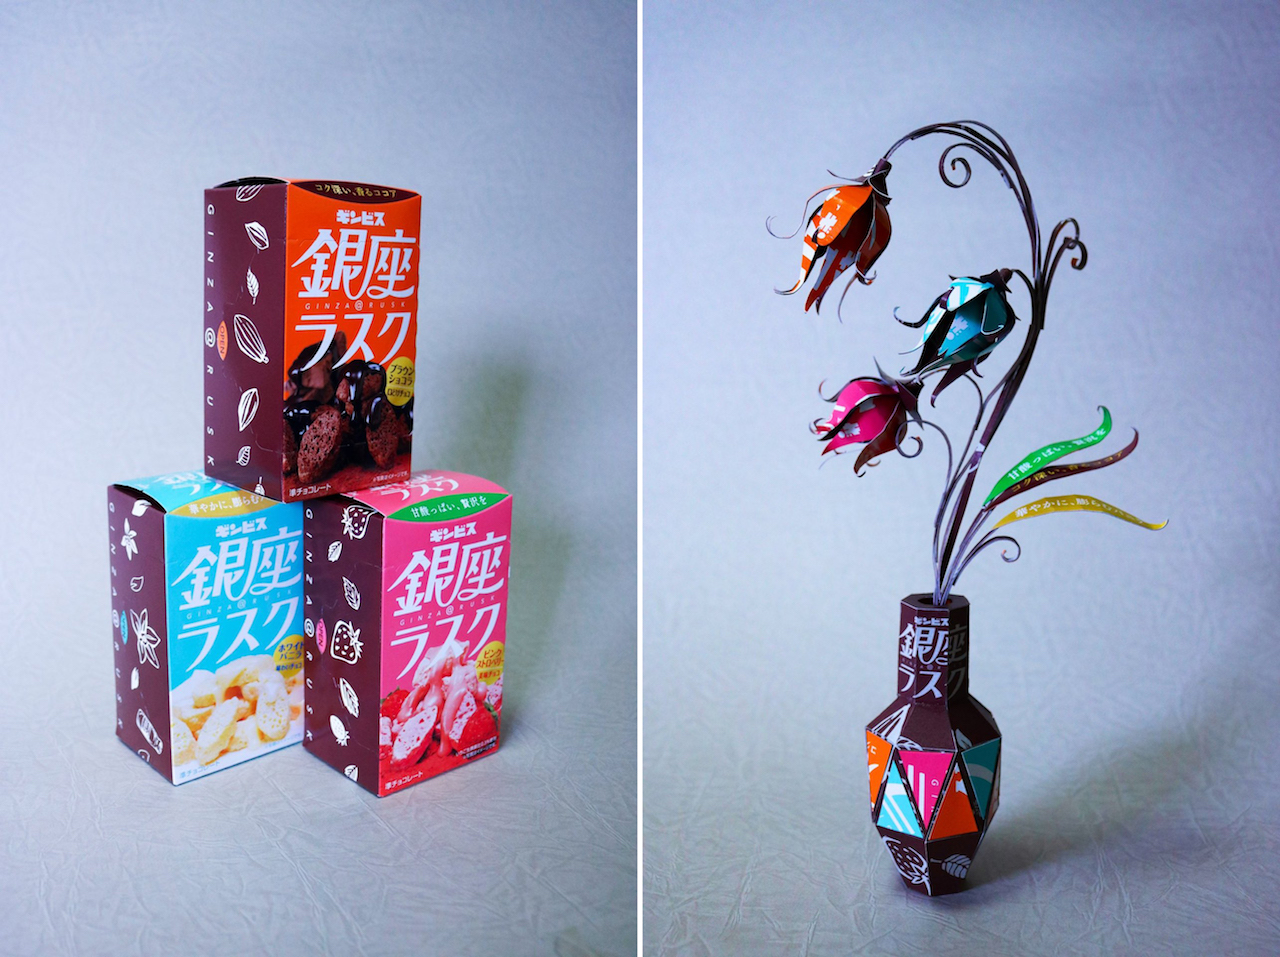 Product Packaging Turned Into Art - 23